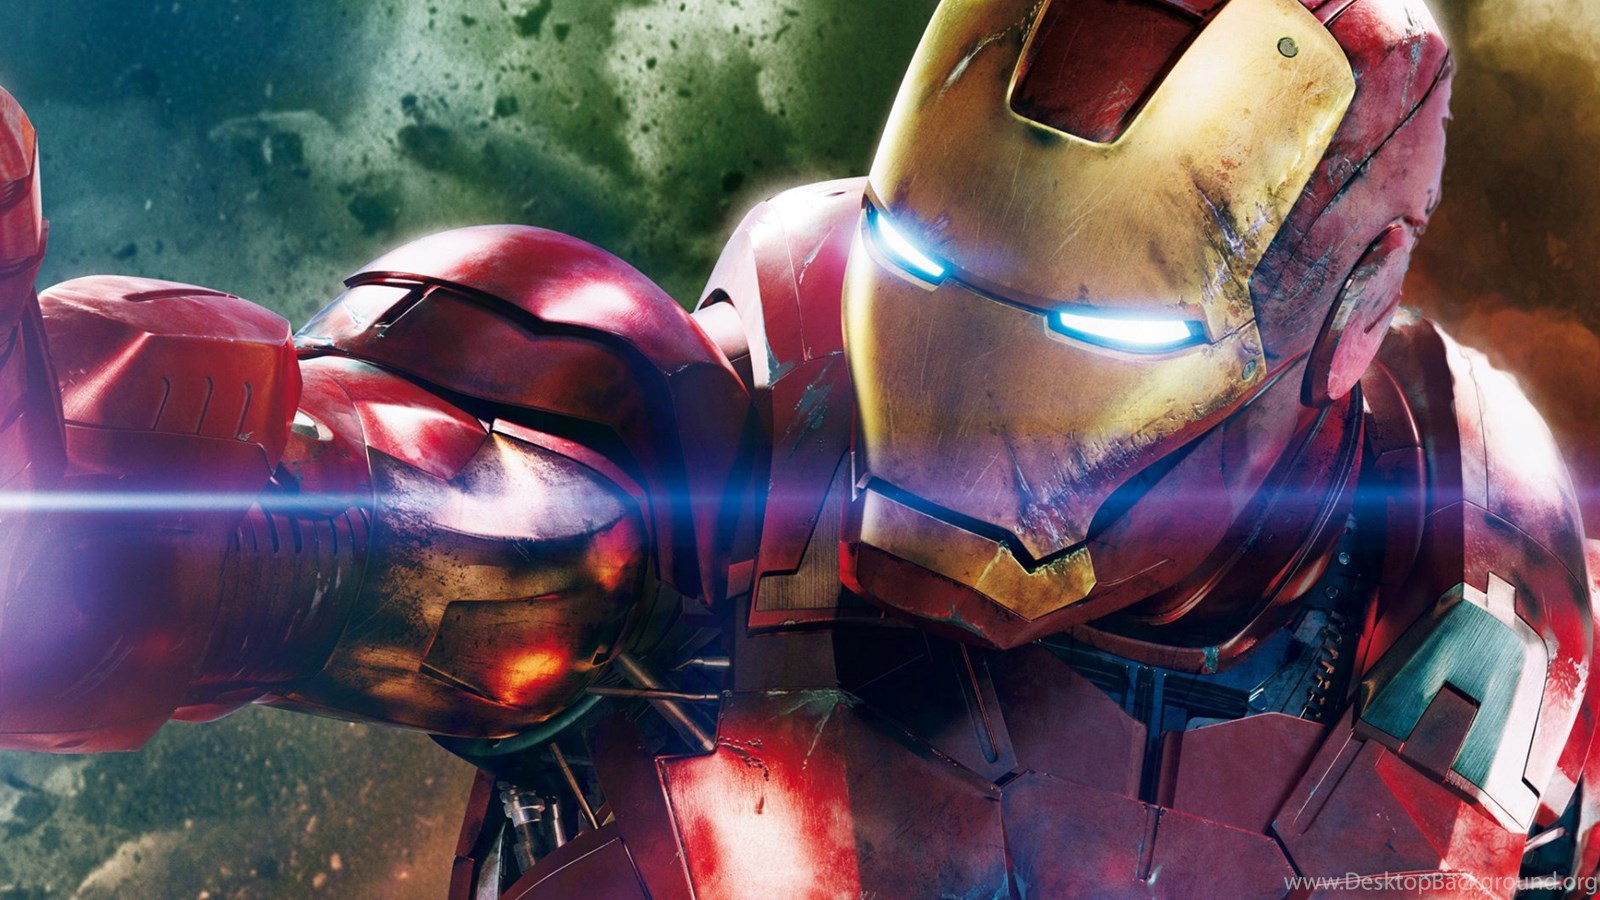 Iron Man 3 Hd Wallpapers High Resolution: The Avengers Iron Man HD Desktop Wallpapers : High